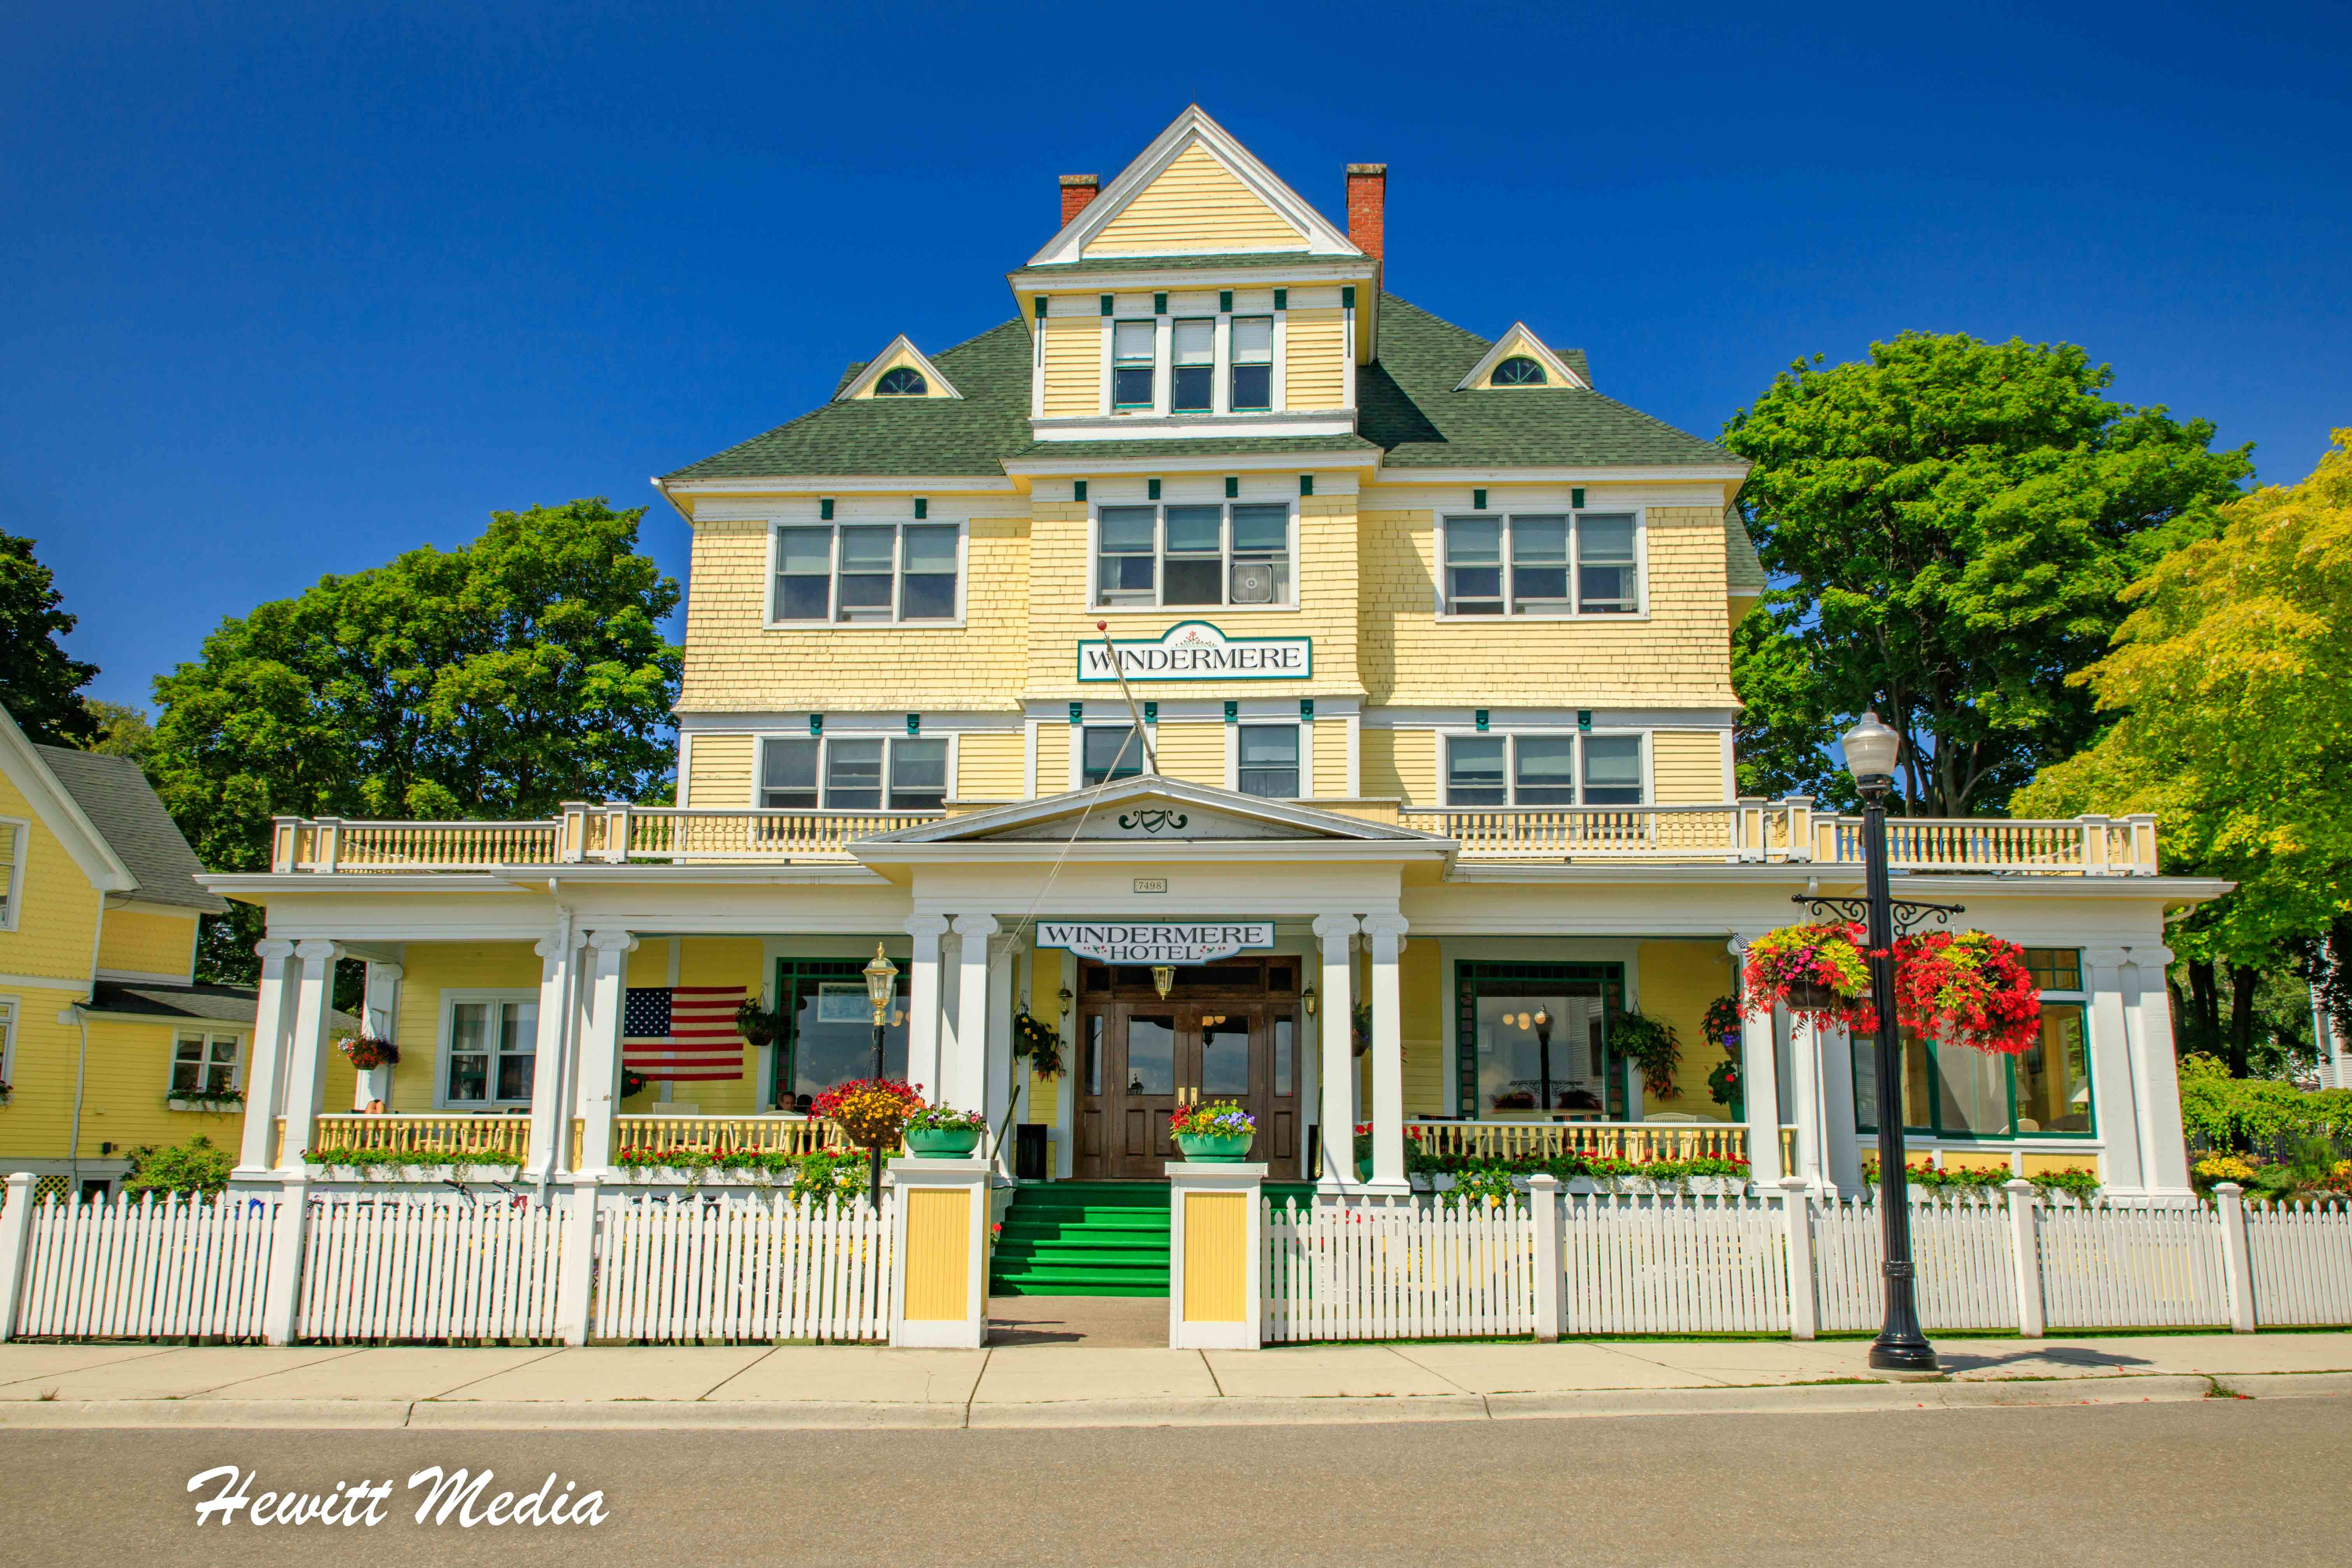 The Beautiful Windermere Hotel on Mackinac Island